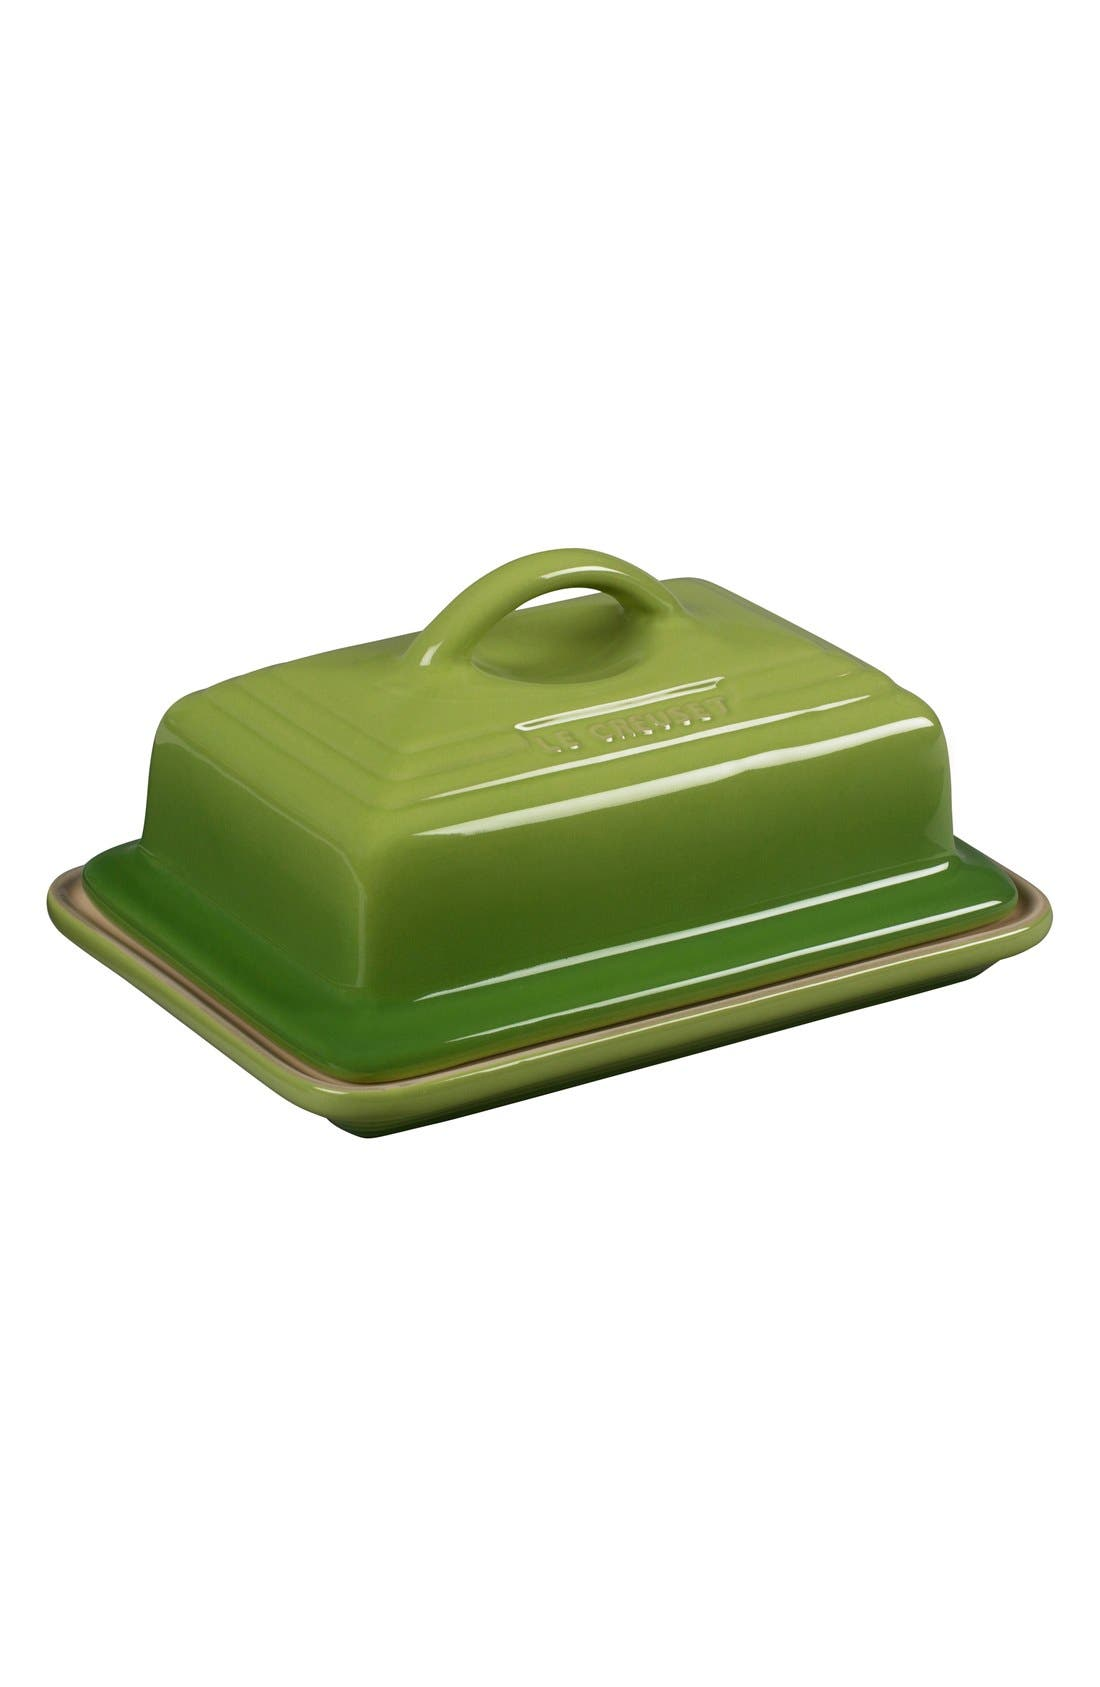 Alternate Image 1 Selected - Le Creuset 'Heritage' Stoneware Butter Dish & Lid